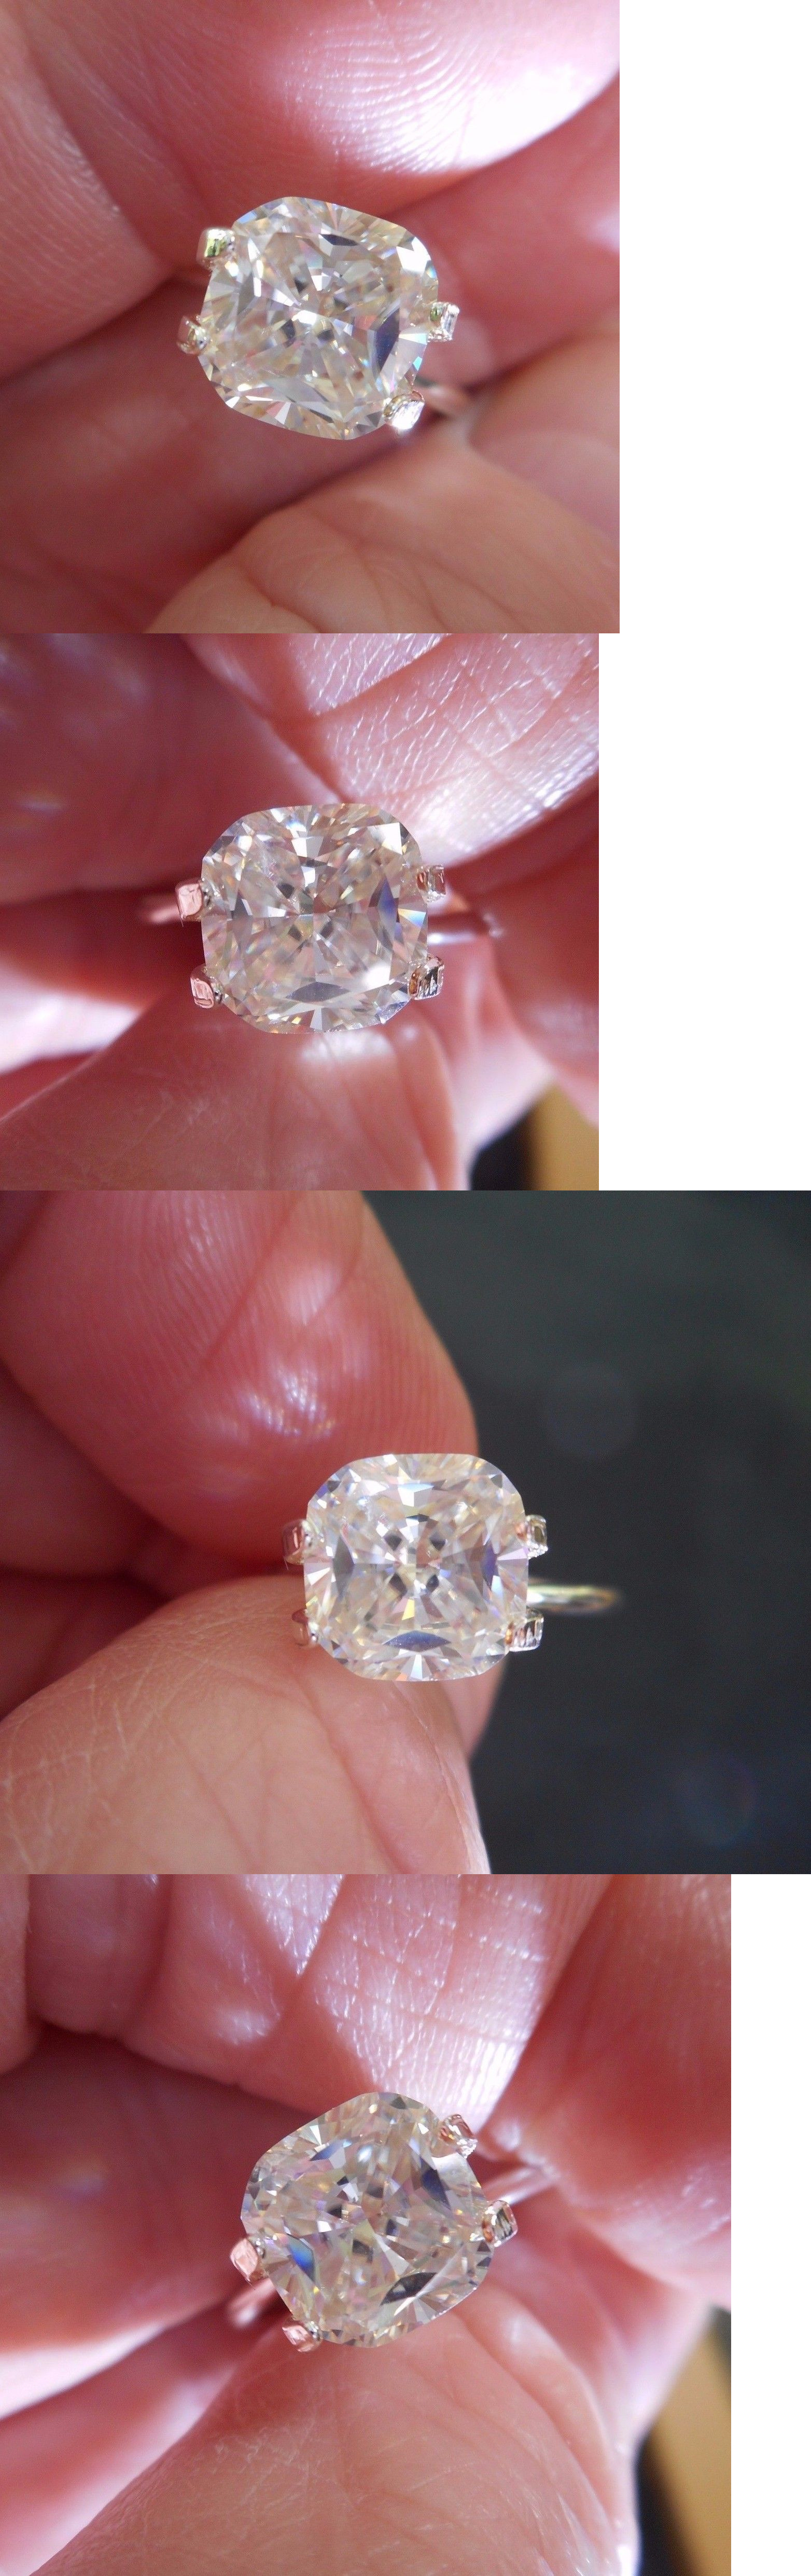 Synthetic Moissanite 110800: Cashmere 1.78 Ct 7.83X7.72 Mm Vvs1 Icy ...